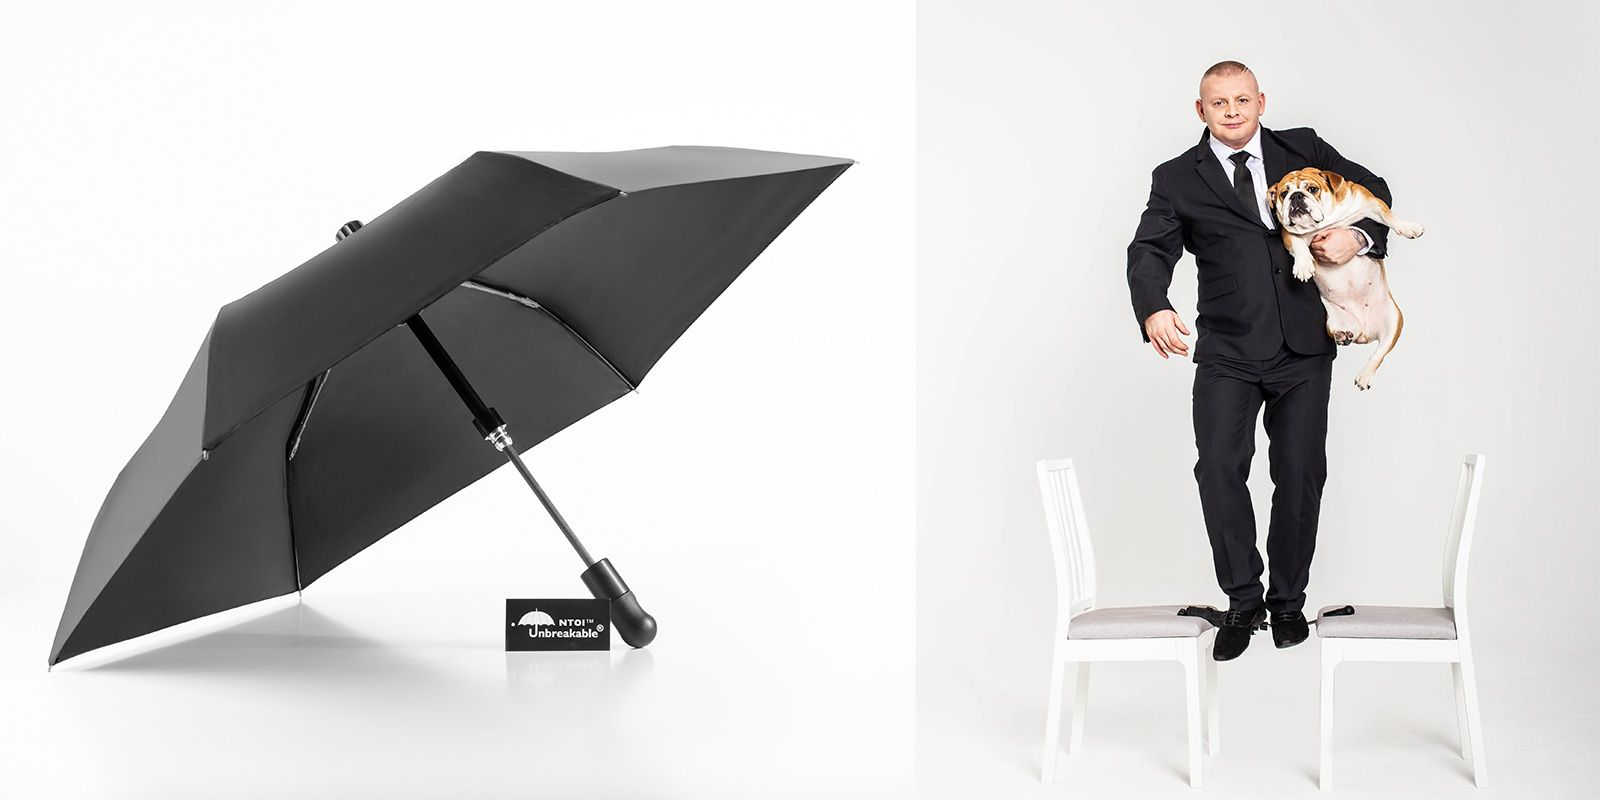 U-212s Unbreakable Umbrella